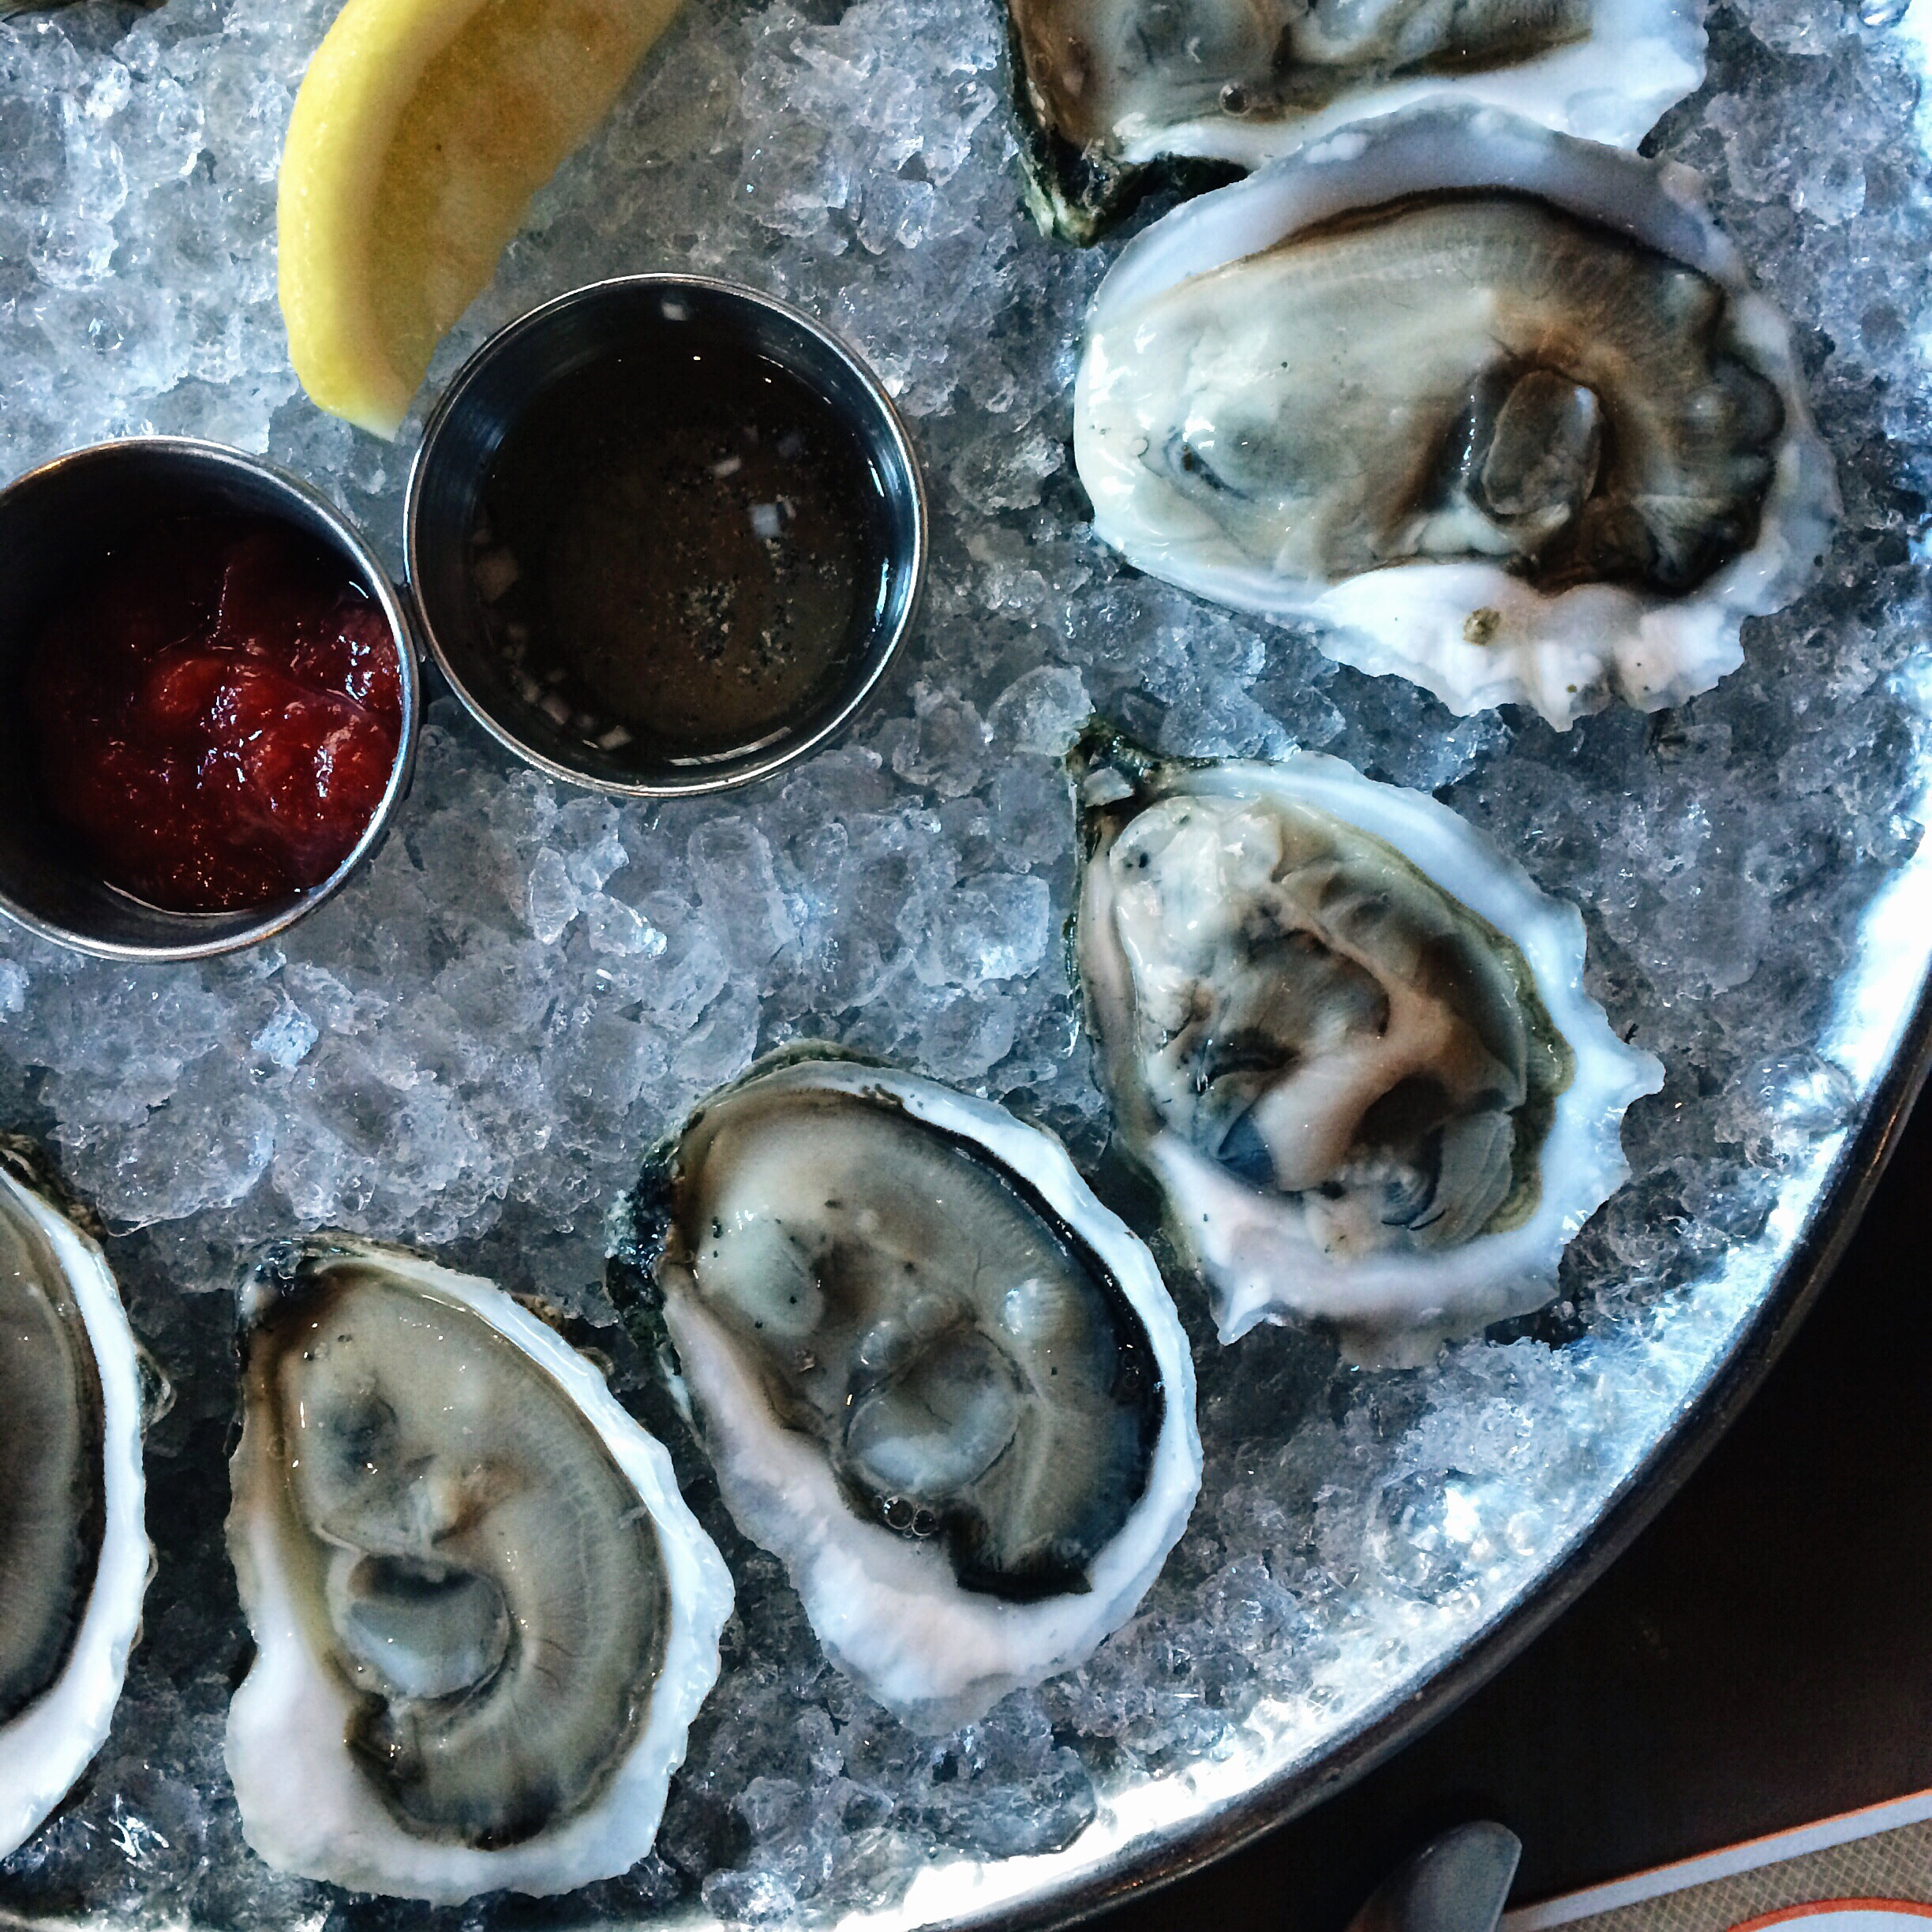 Island Creek Oyster Bar: My Seafood Fix In Boston